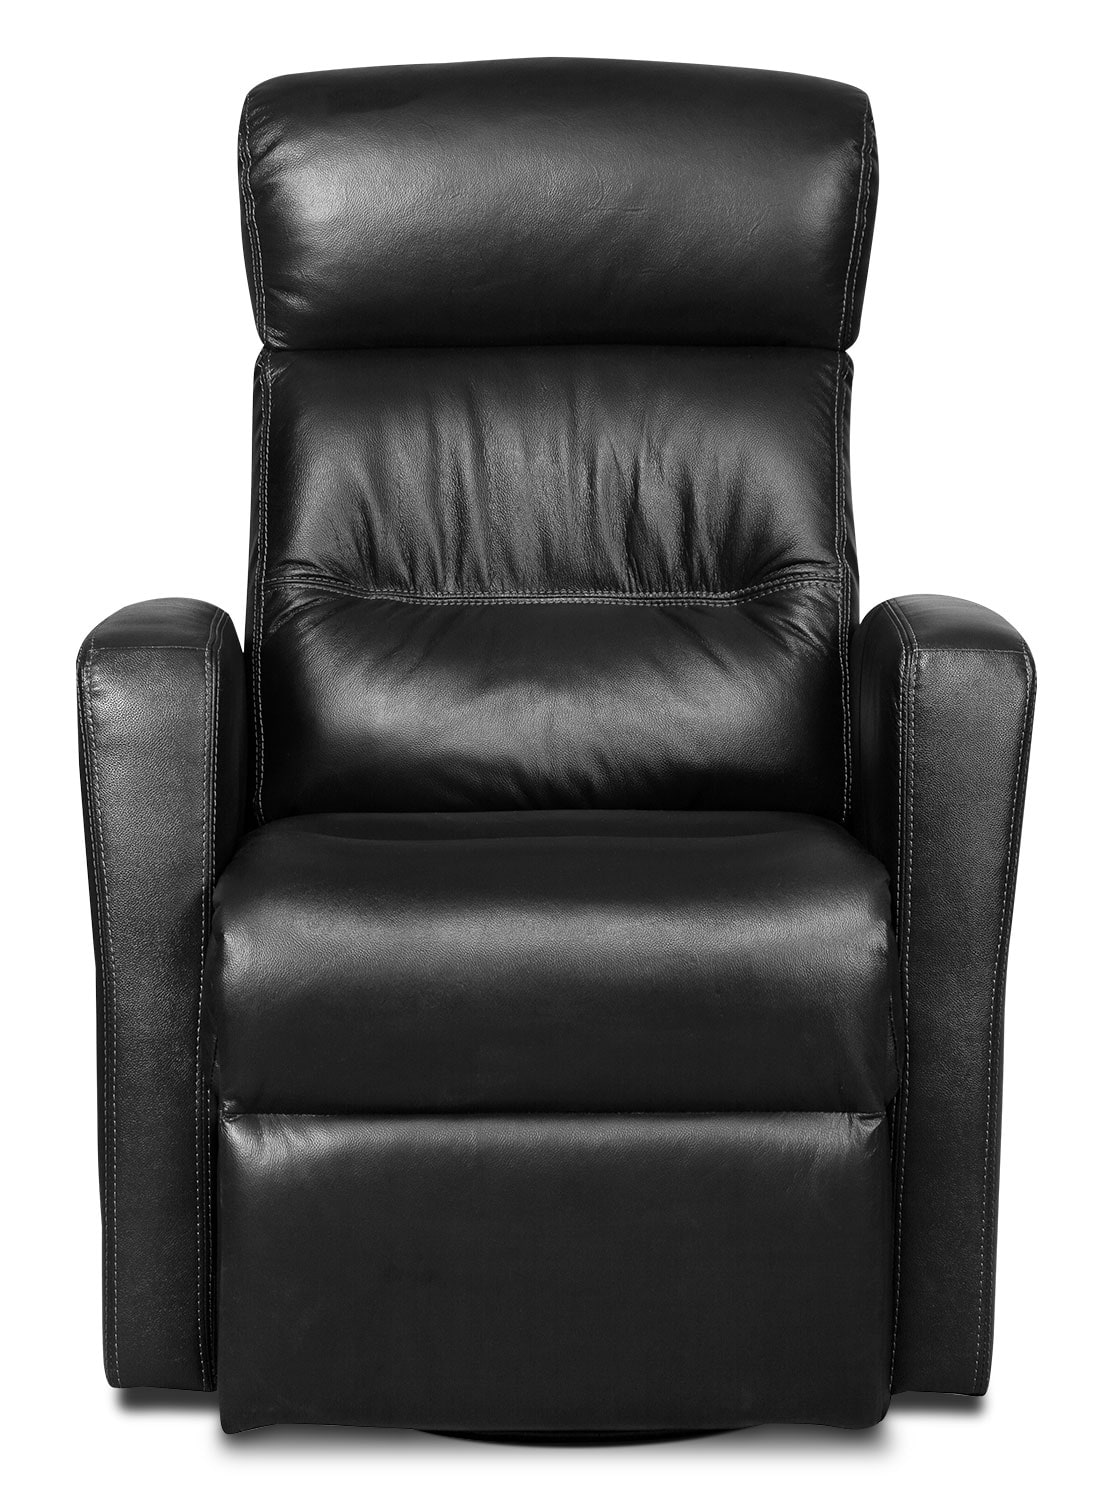 genuine leather swivel rocker reclining chair 48306